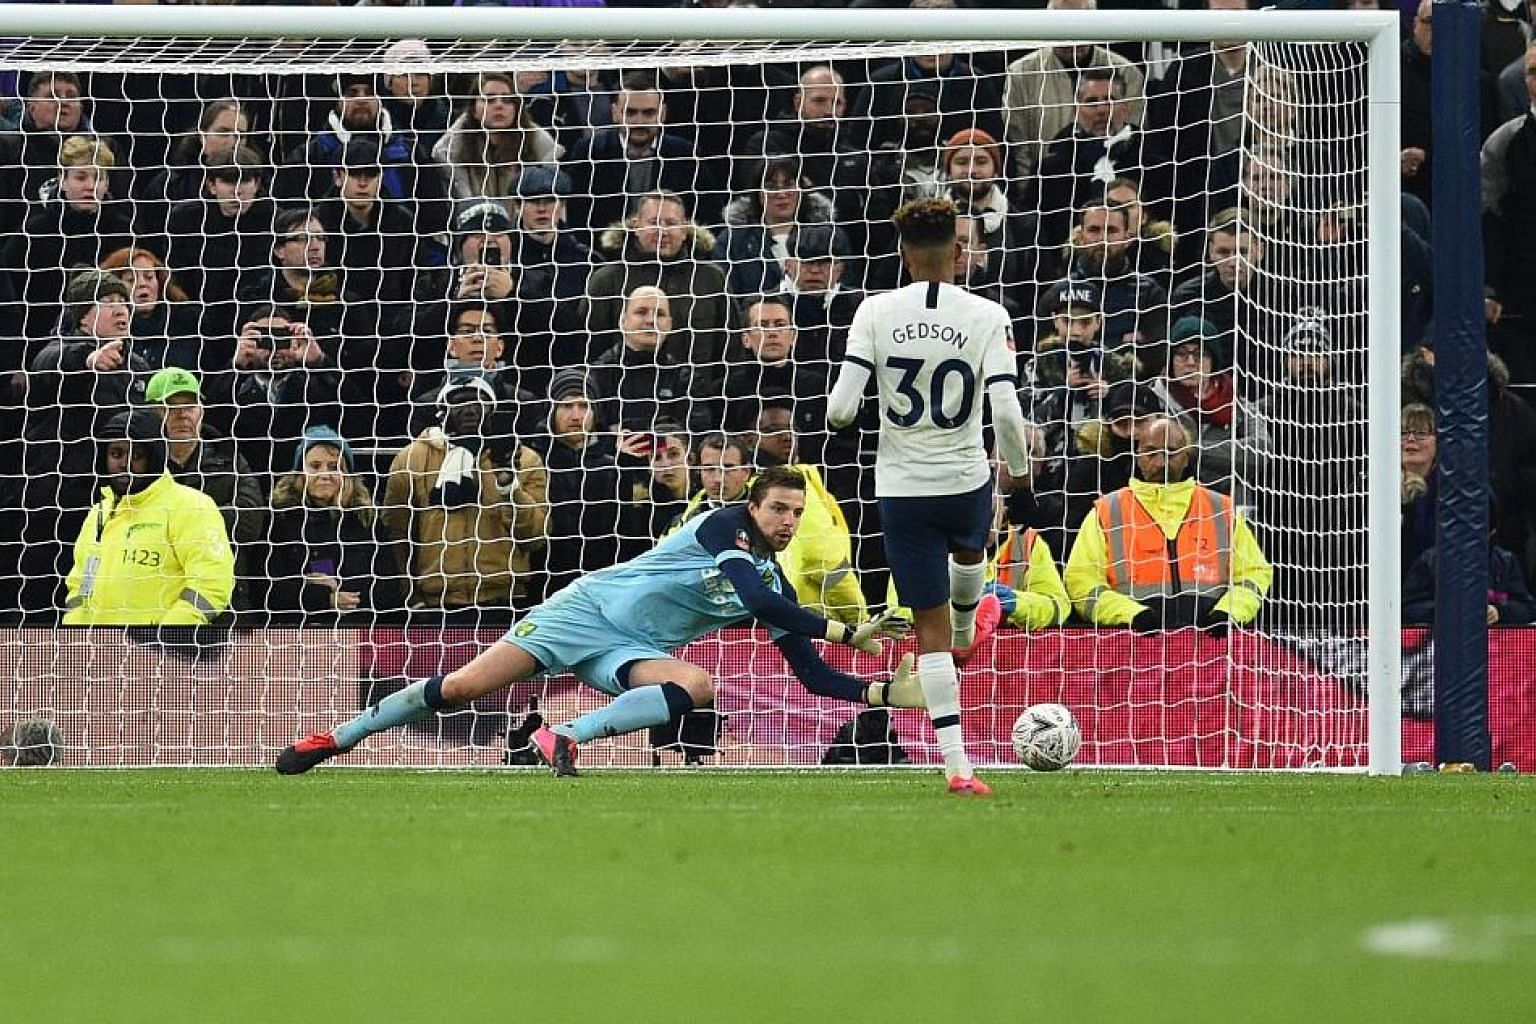 Norwich goalkeeper Tim Krul saving a spot kick from Gedson Fernandes, Tottenham's third miss in the shoot-out, to earn a 3-2 win for the Premier League's bottom club. The Canaries will face the winners of the tie between Derby and Manchester United i